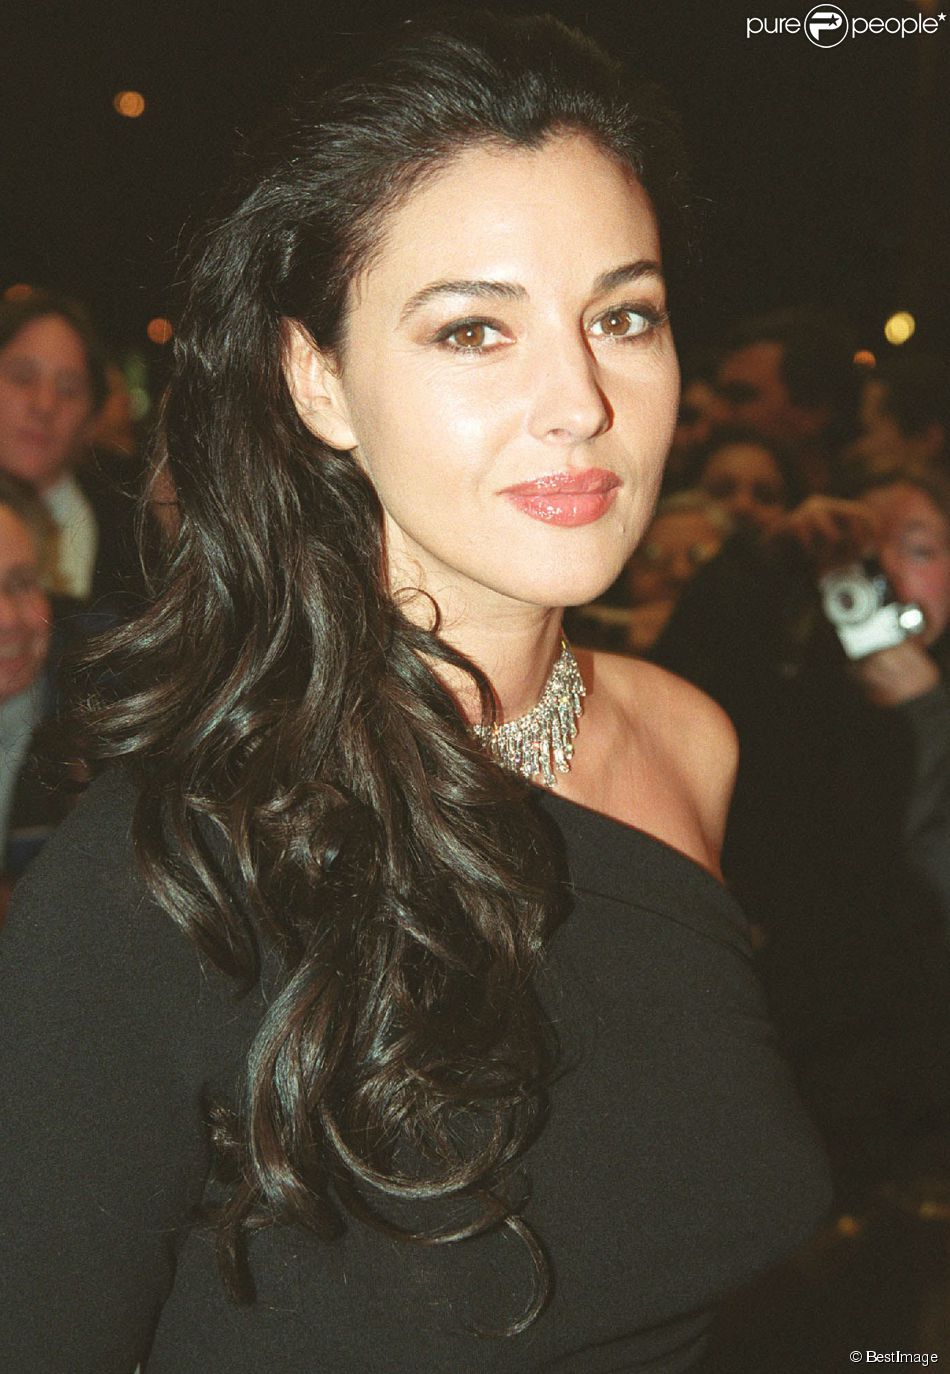 monica bellucci quotes on divorce quotesgram. Black Bedroom Furniture Sets. Home Design Ideas